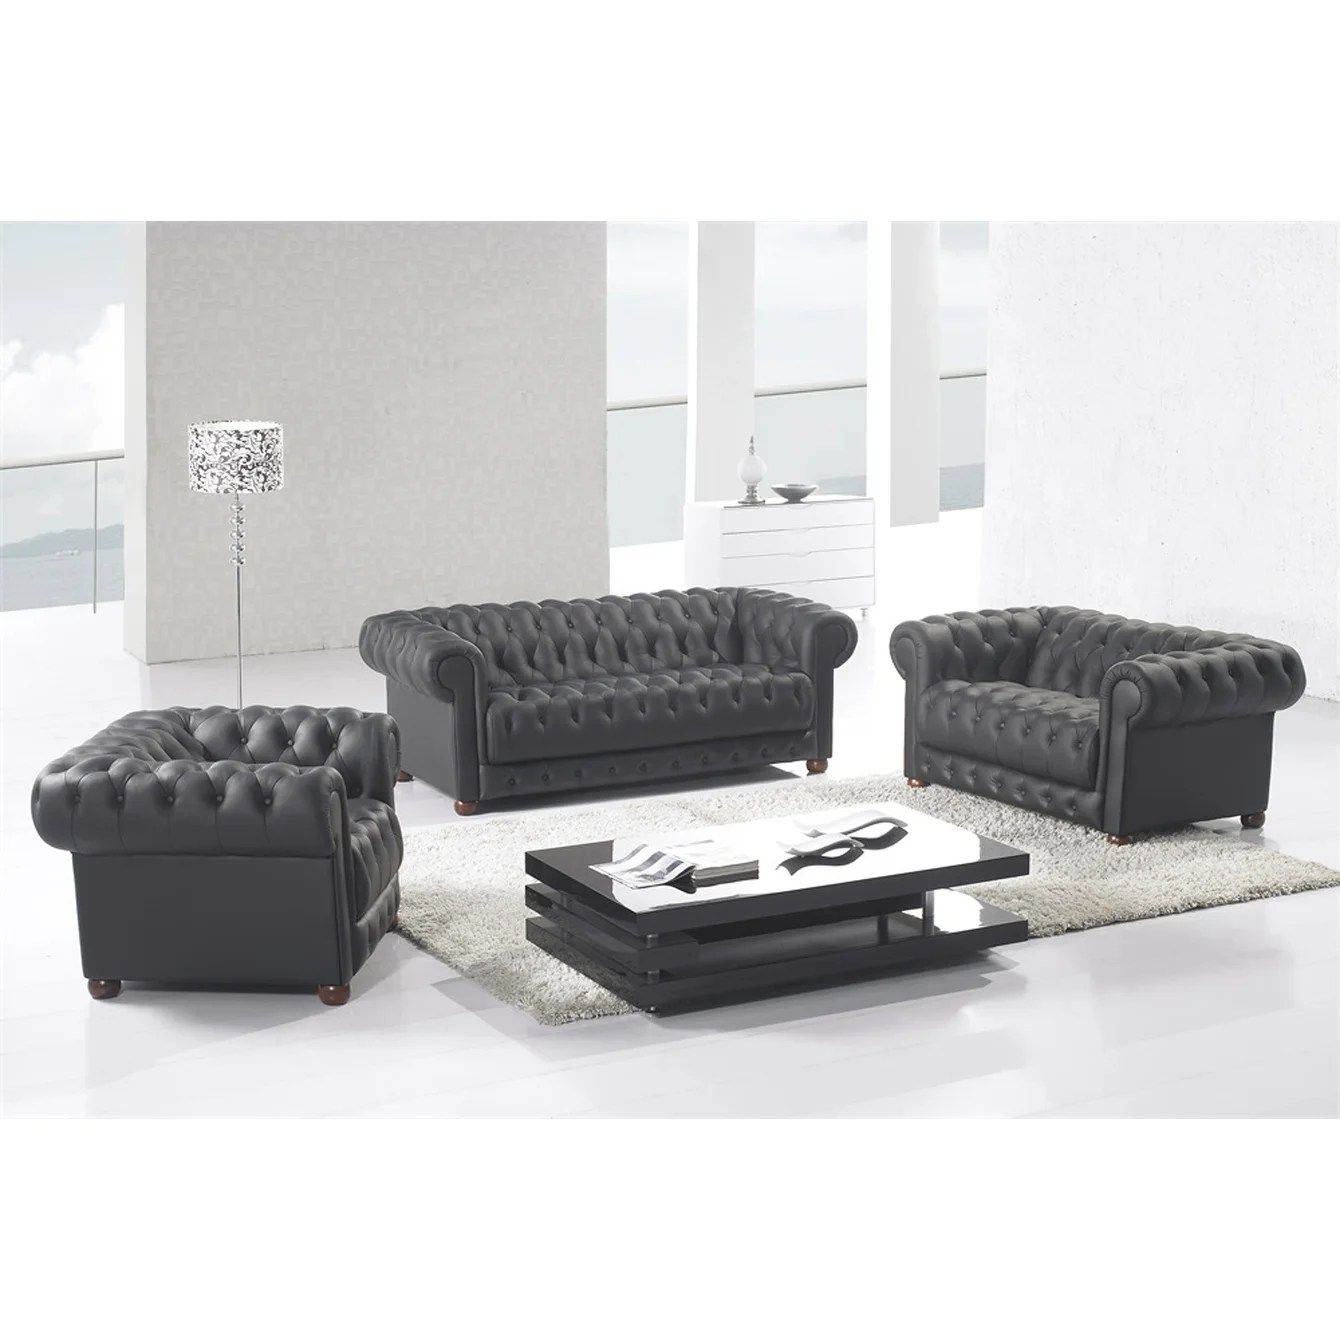 black modern sofa set dr shubir sofat md molecular drive rockville shop matte contemporary real leather configurable living room furniture with loveseat and chair